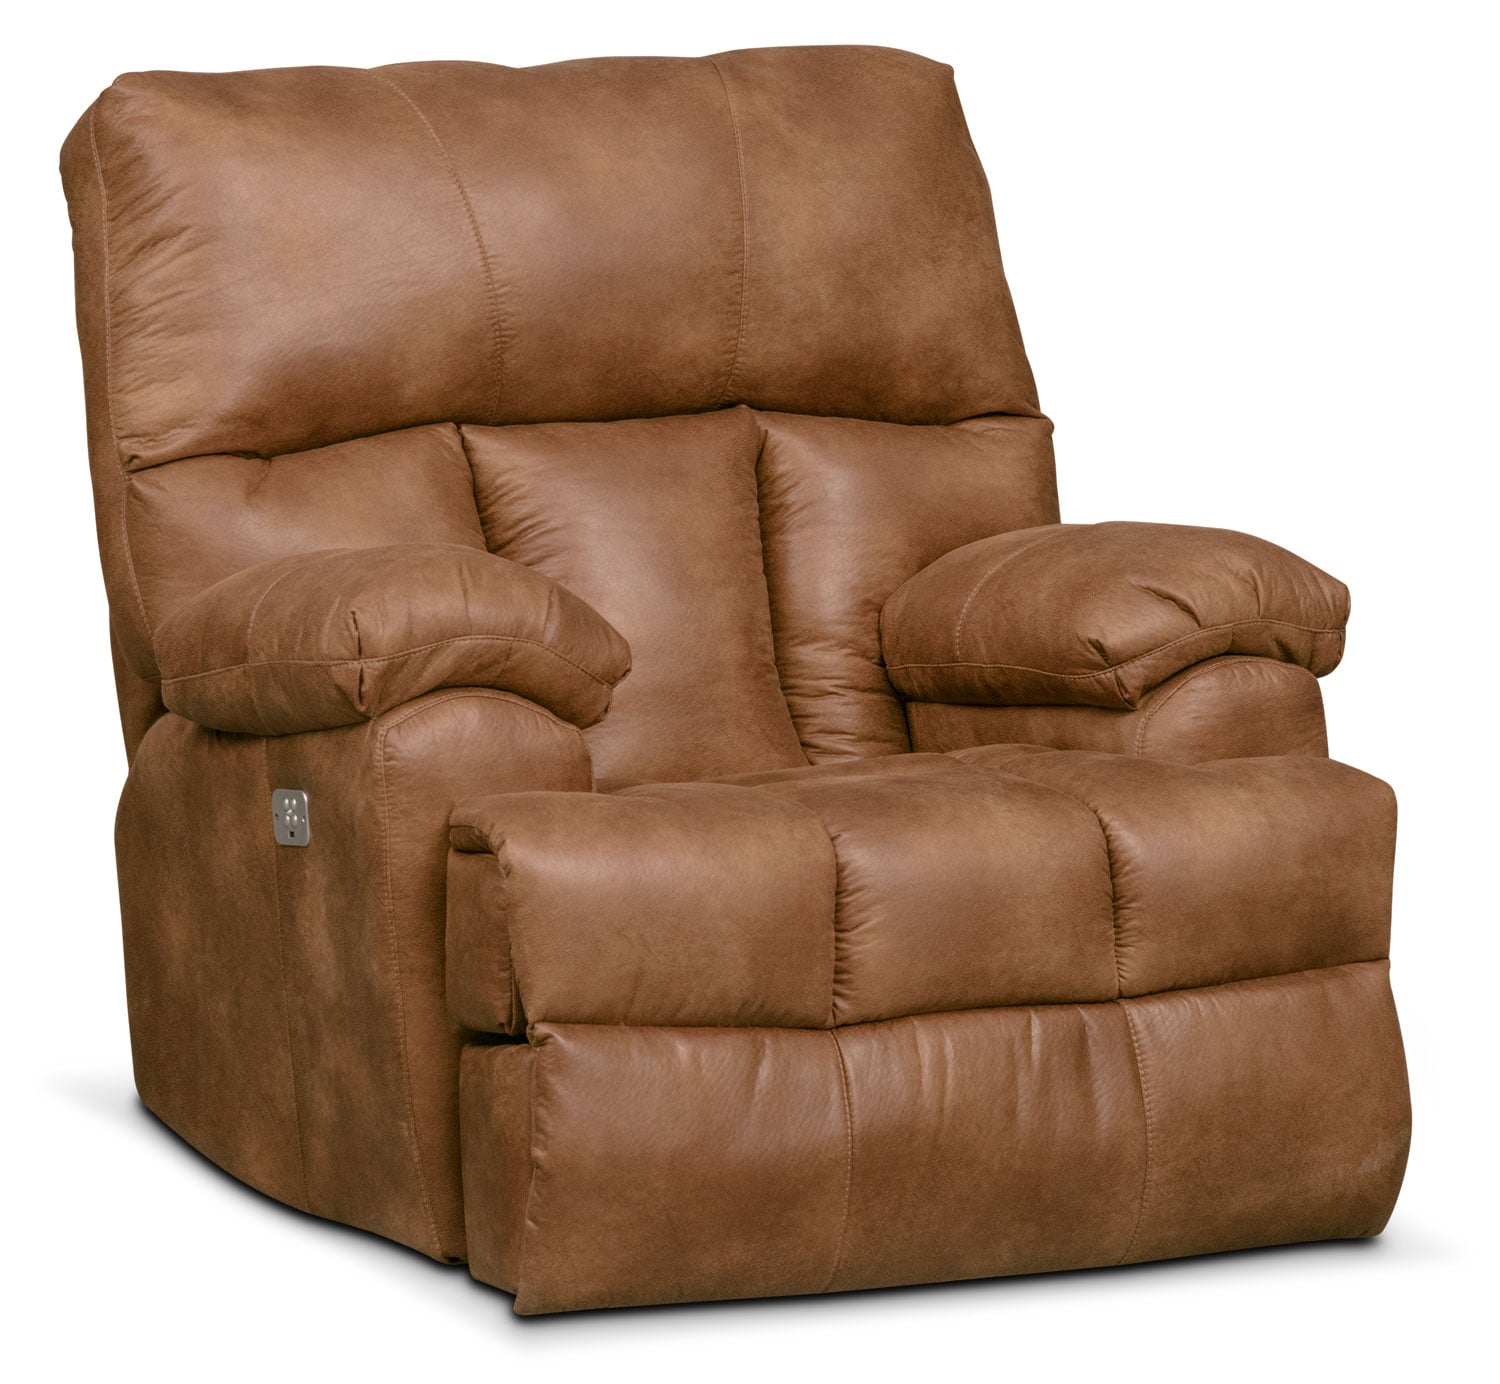 Living Room Furniture - Bronco Dual Power Recliner - Almond